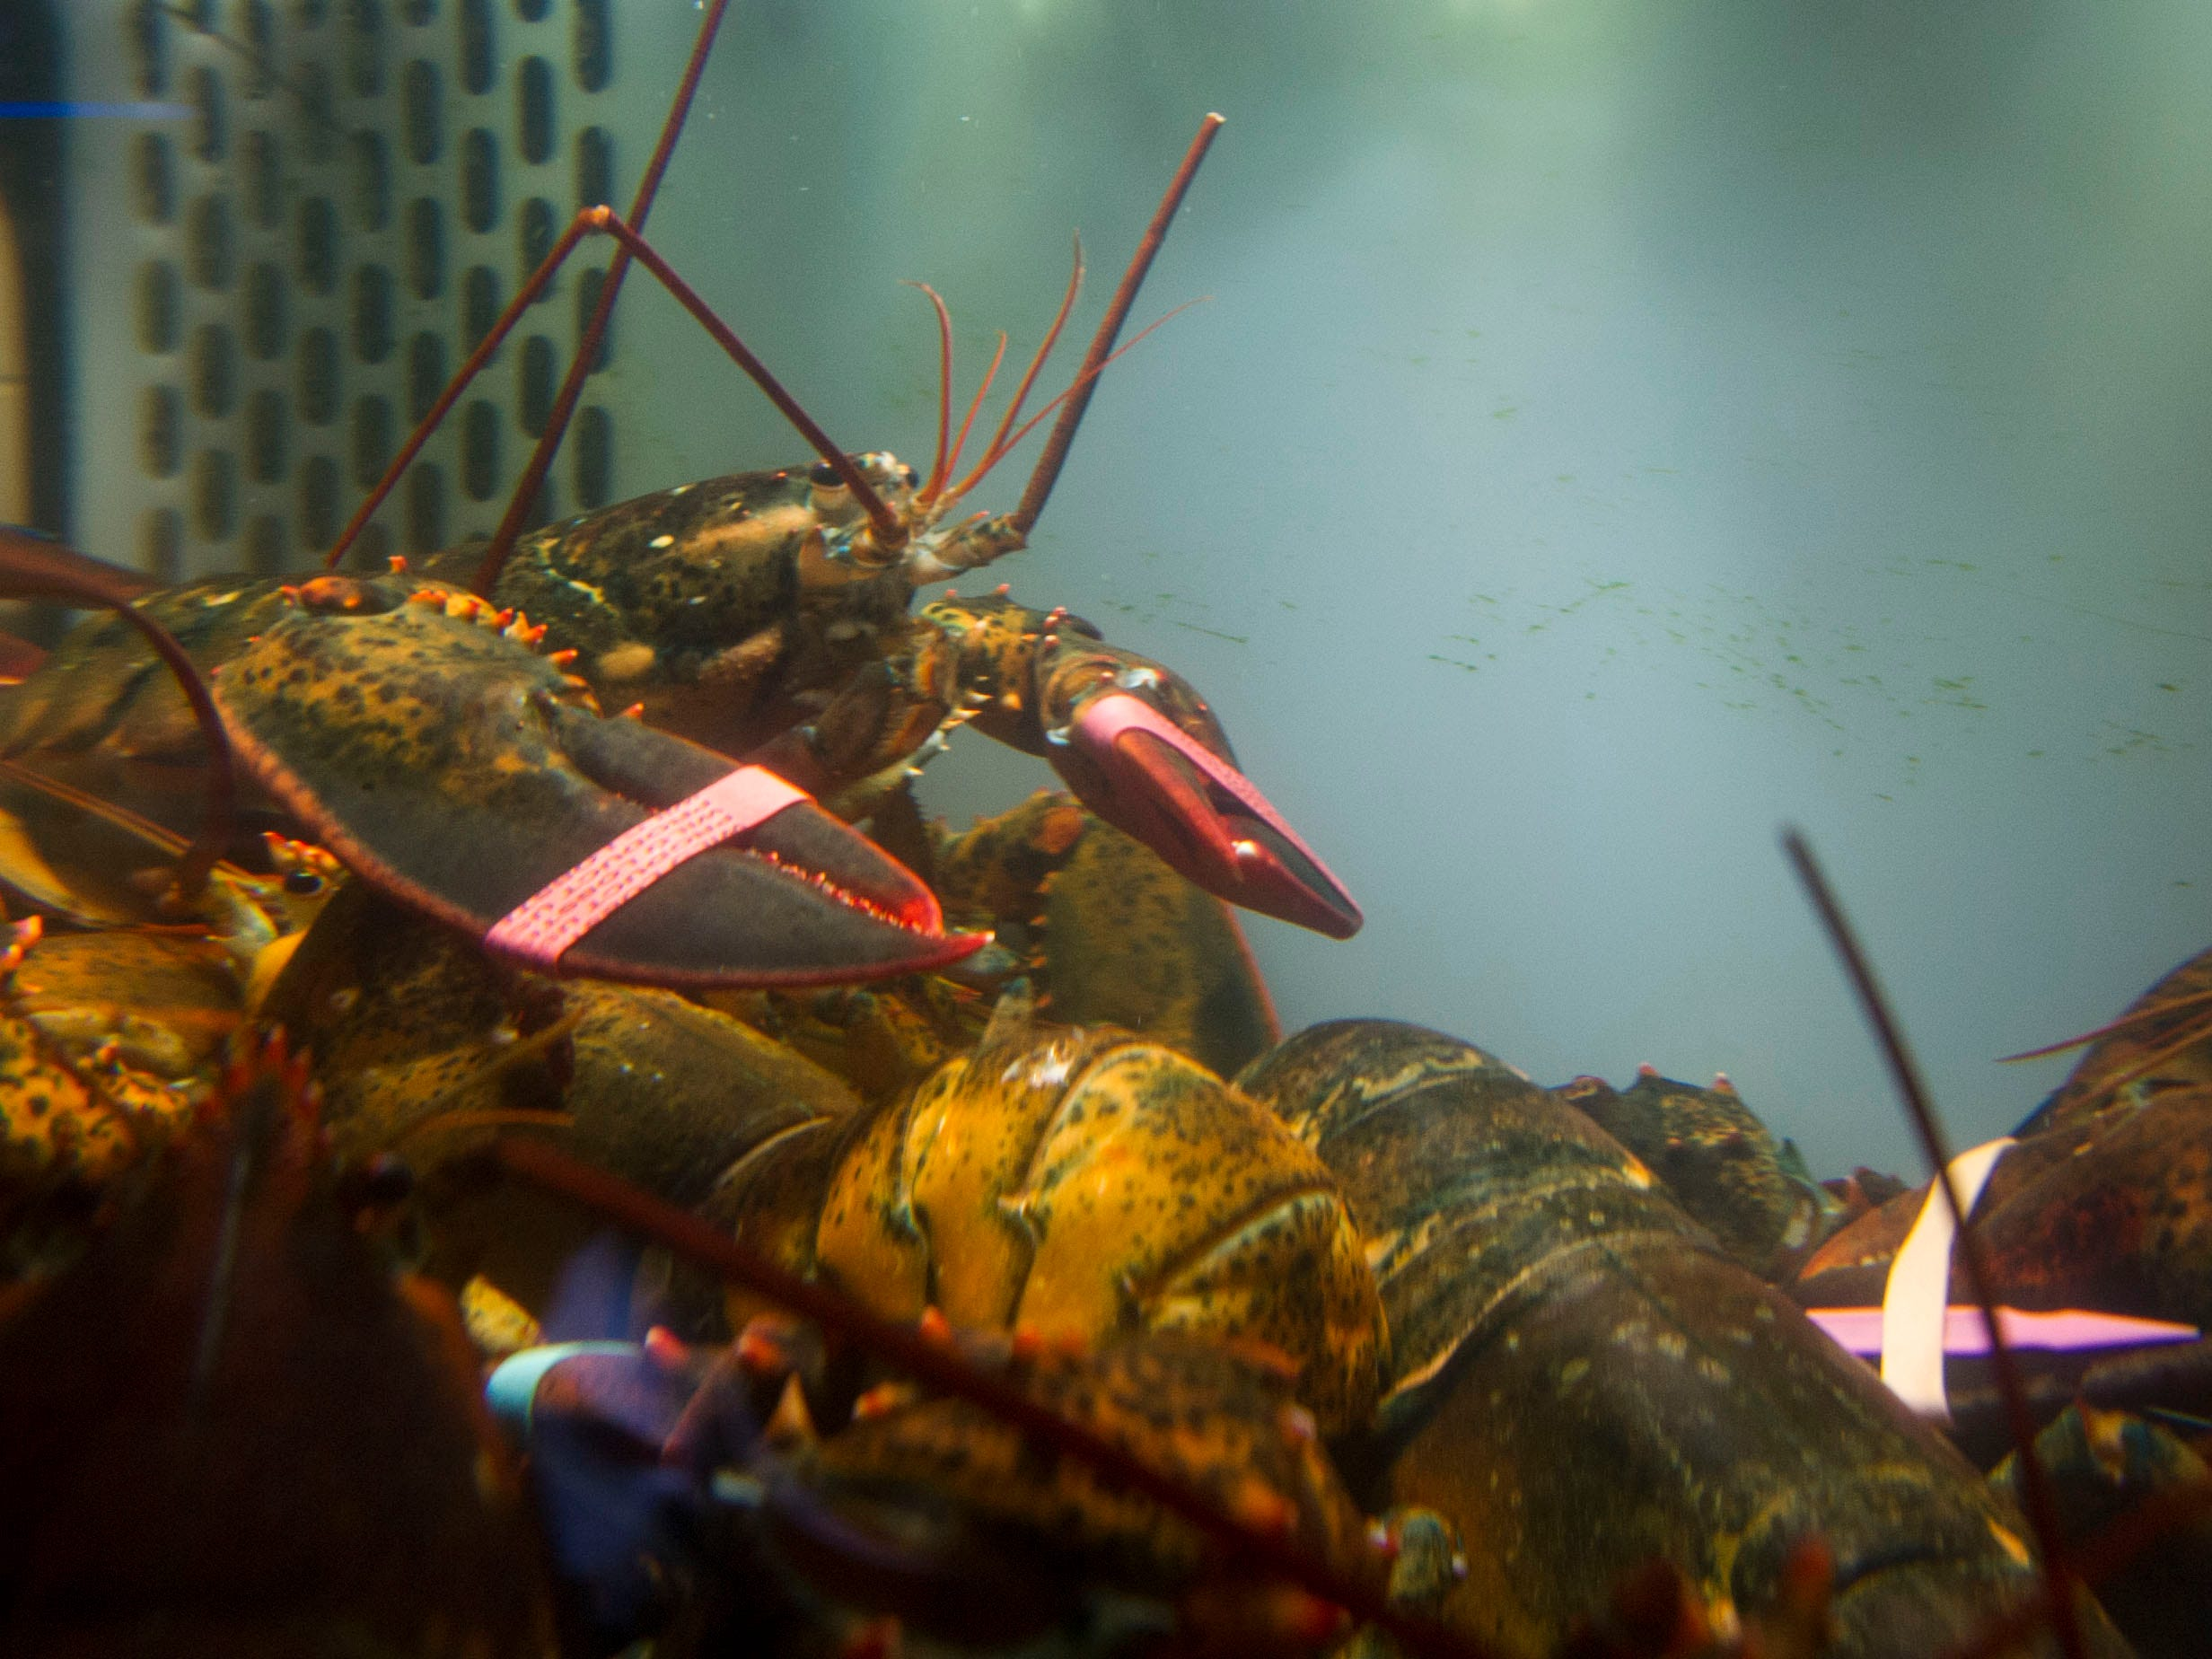 The live Lobster tank at  Chesapeake's. ( J. MILES CARY/NEWS SENTINEL )